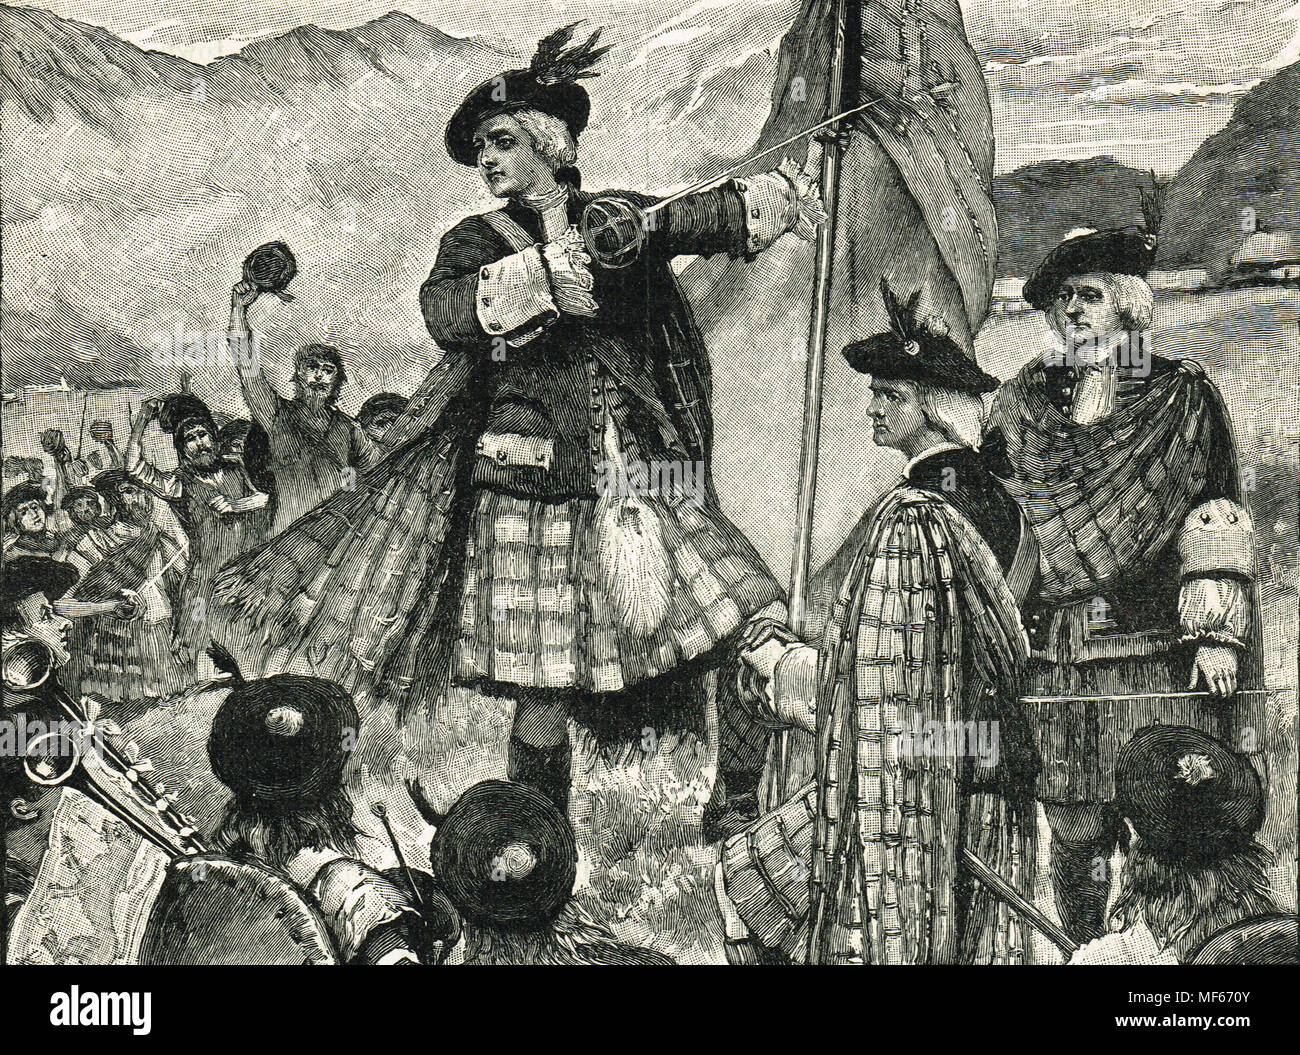 John Erskine, Earl of Mar, raising the Pretender's standard, The Jacobite  rising of 1715 Stock Photo - Alamy